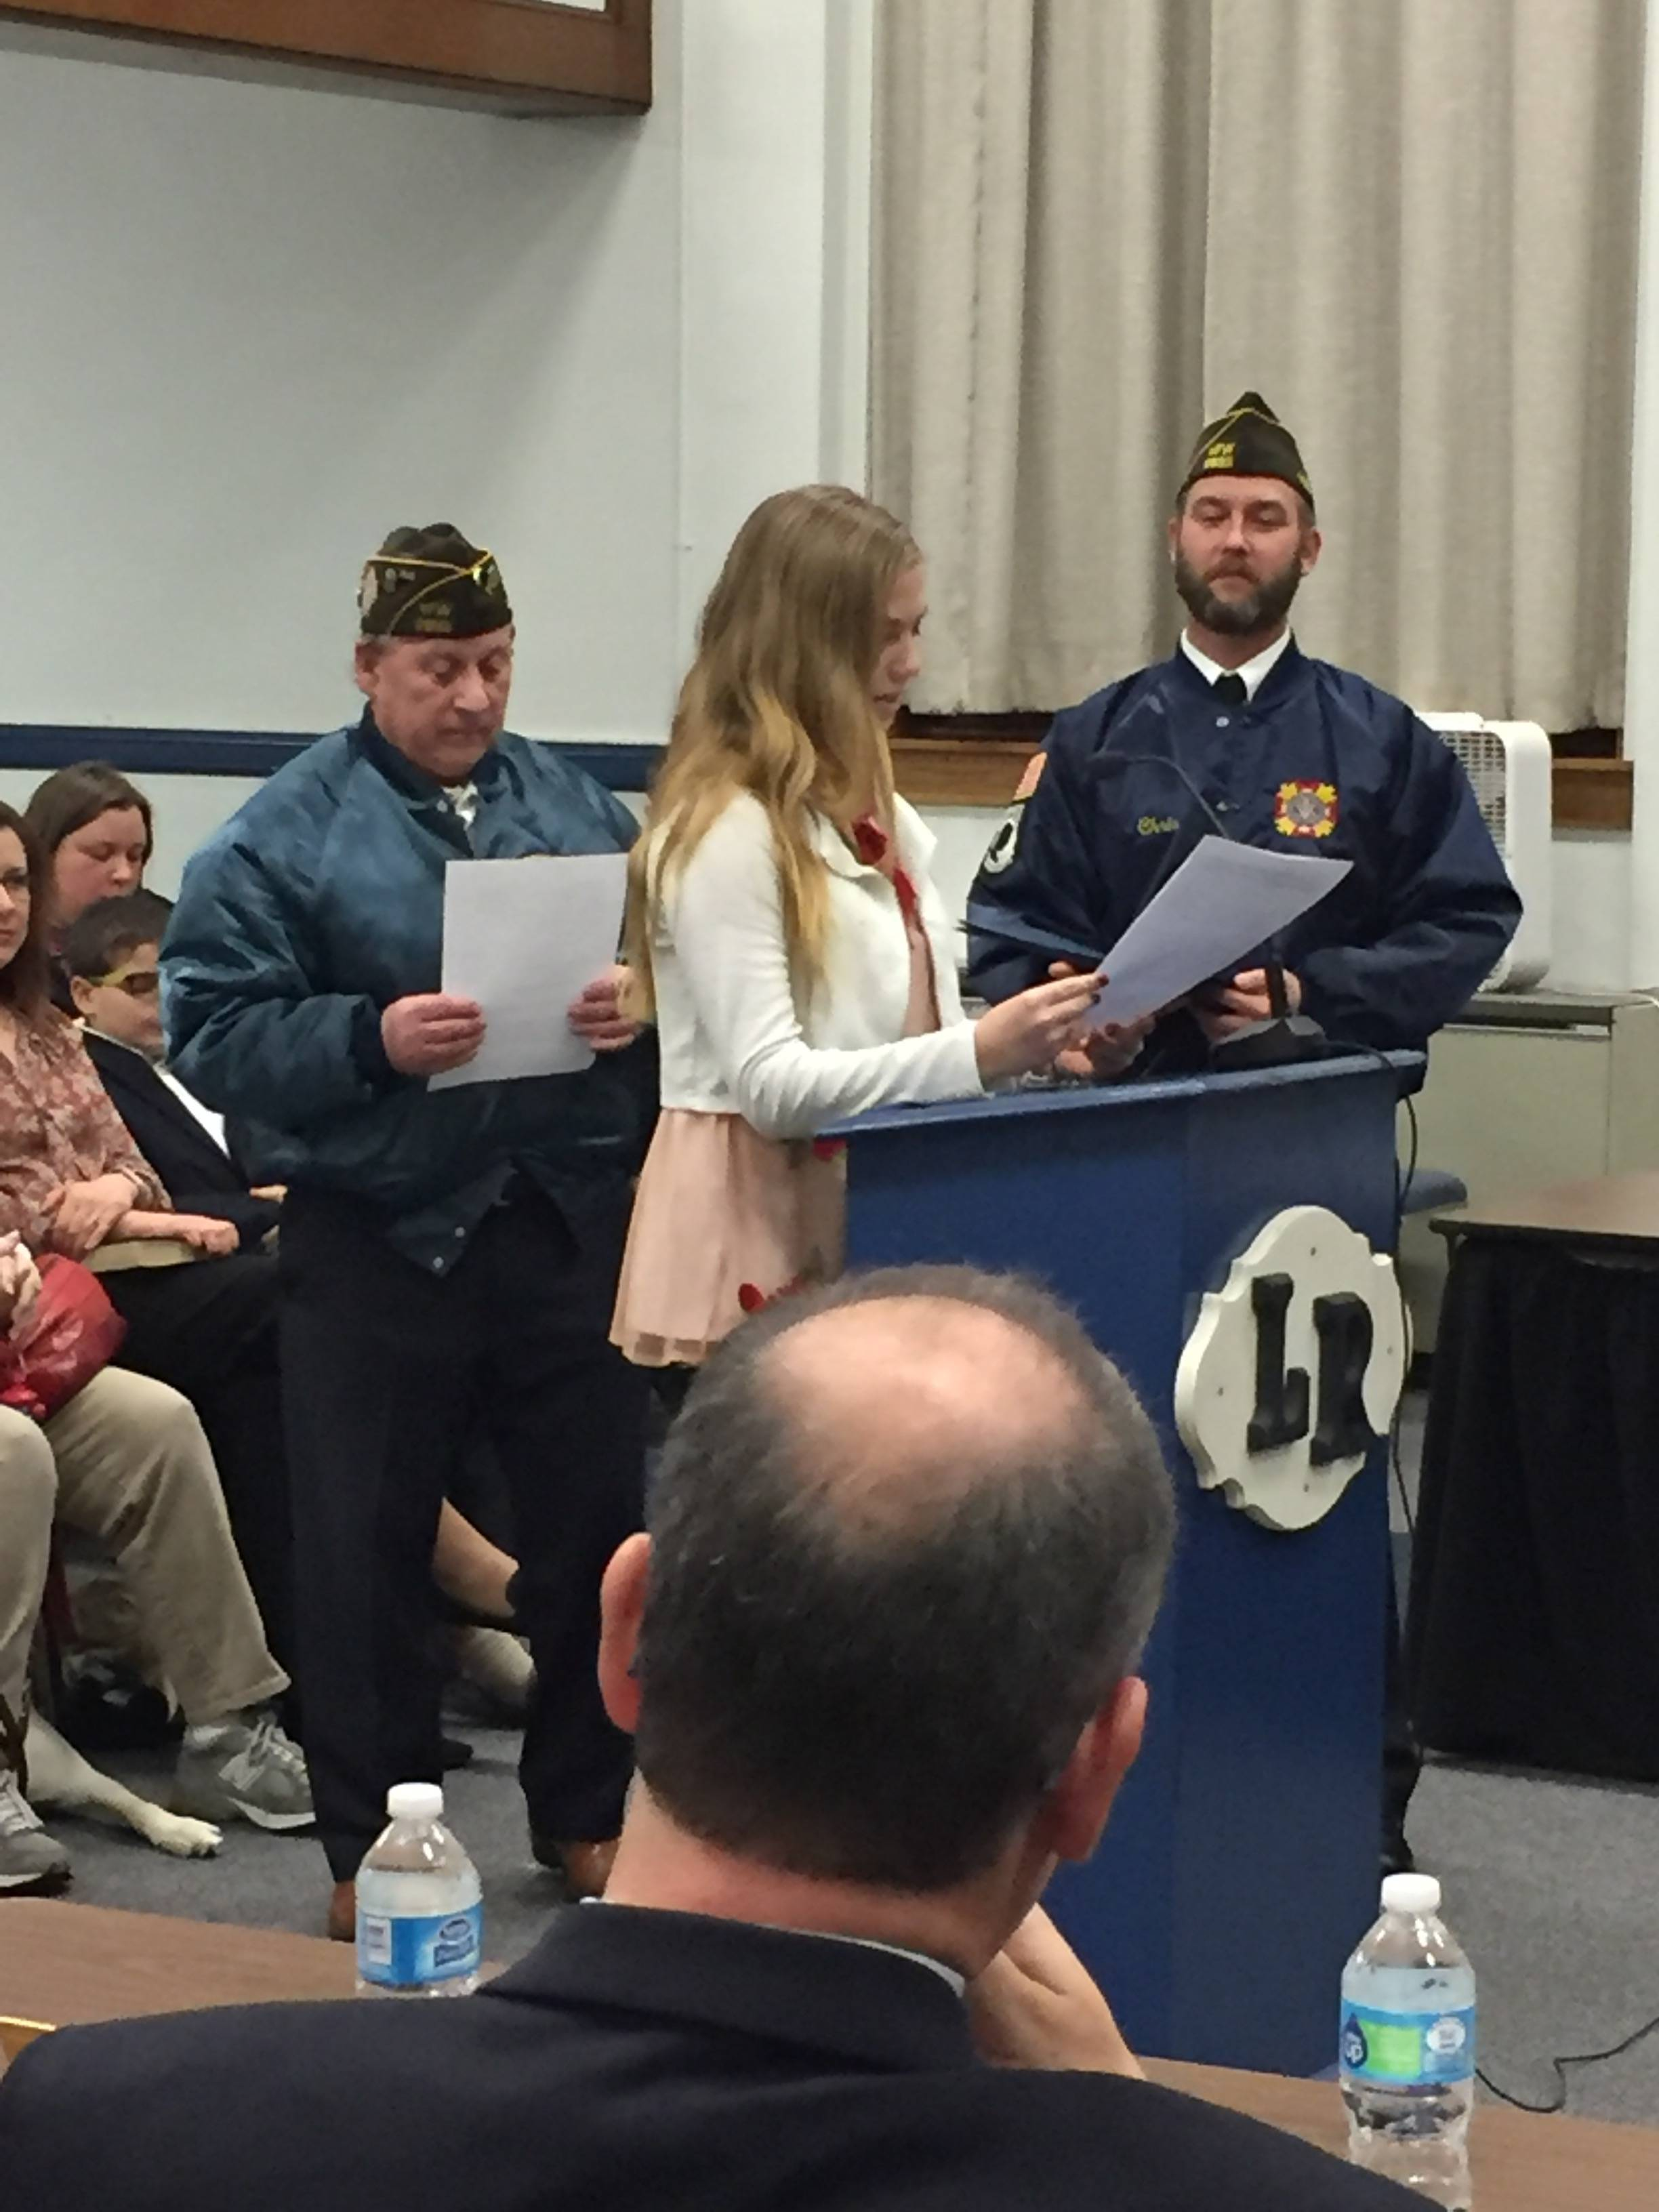 local vfw celebrates patriots pen and voice of democracy essay  9b743532e3cd20cd952d 7031b872df1ea4e890a5 patriots pen emma wilk jpg